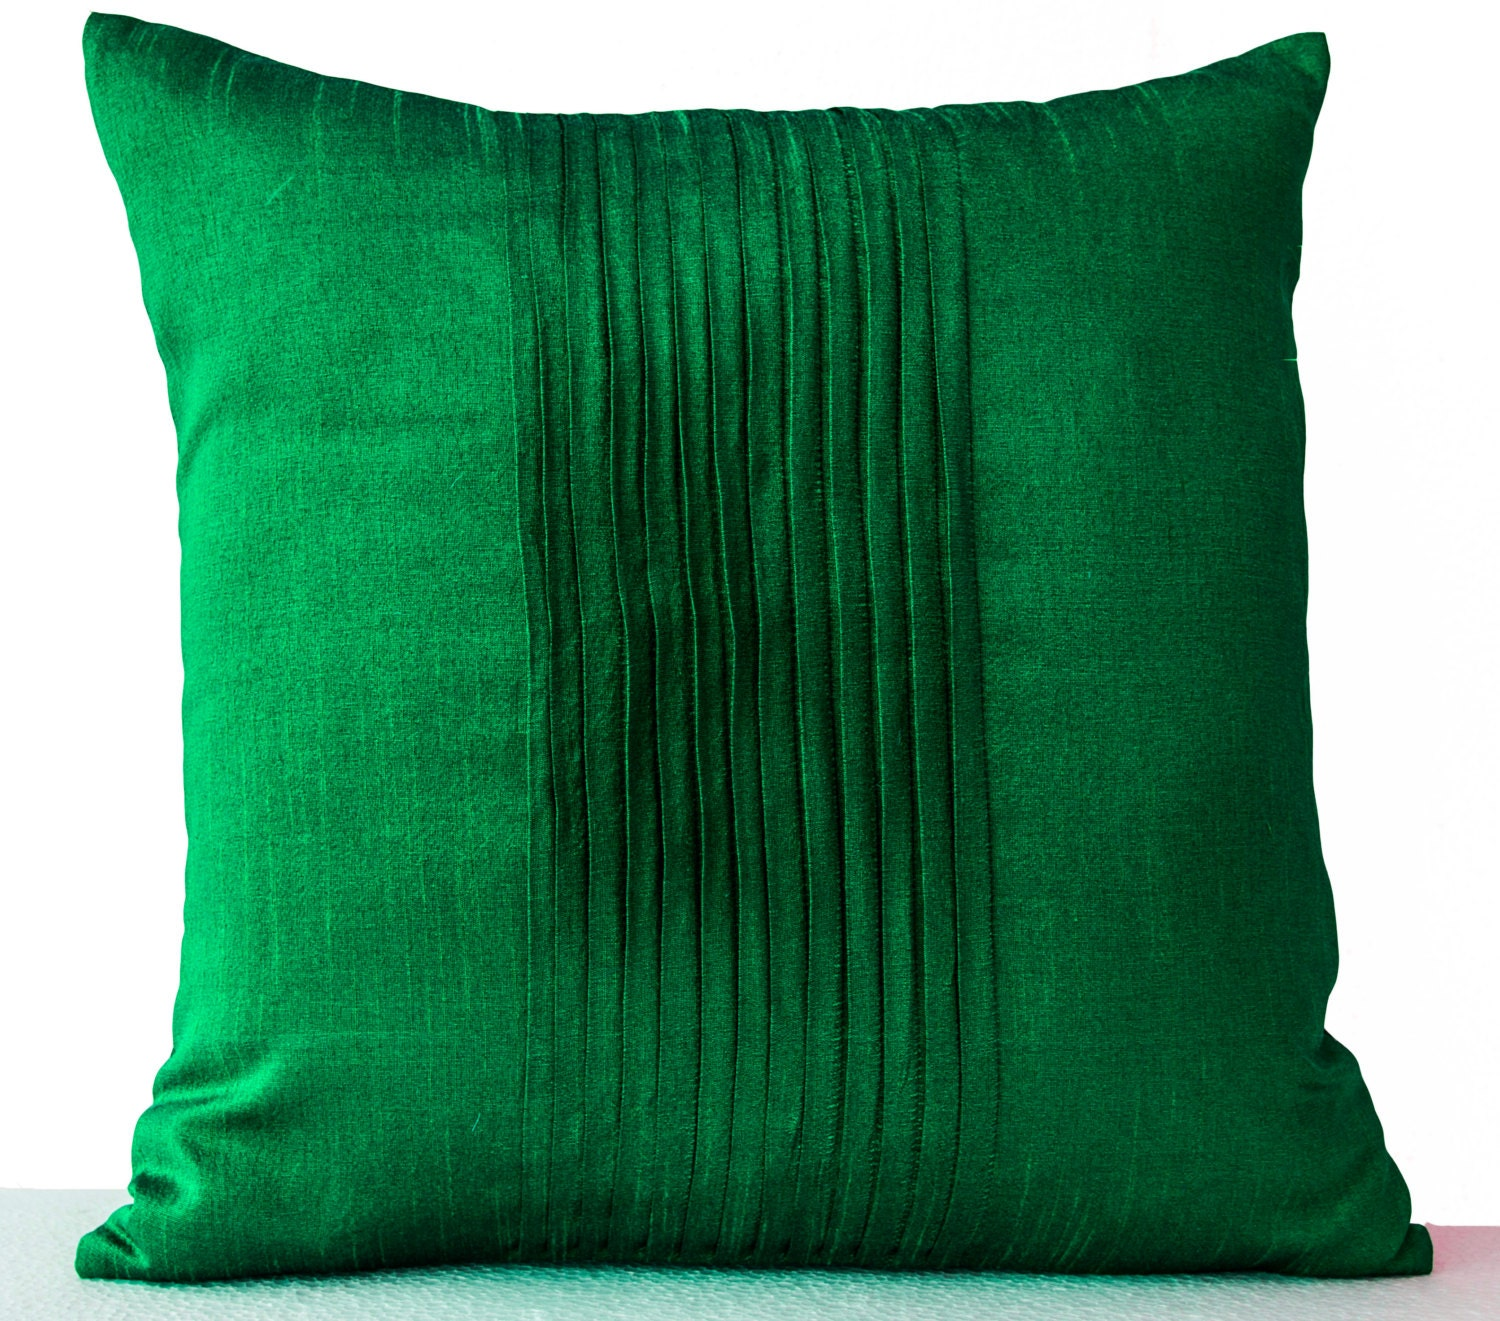 Decorative Pillows For Bed Green : Decorative Pillow For Couch Throw Pillows in Emerald Green